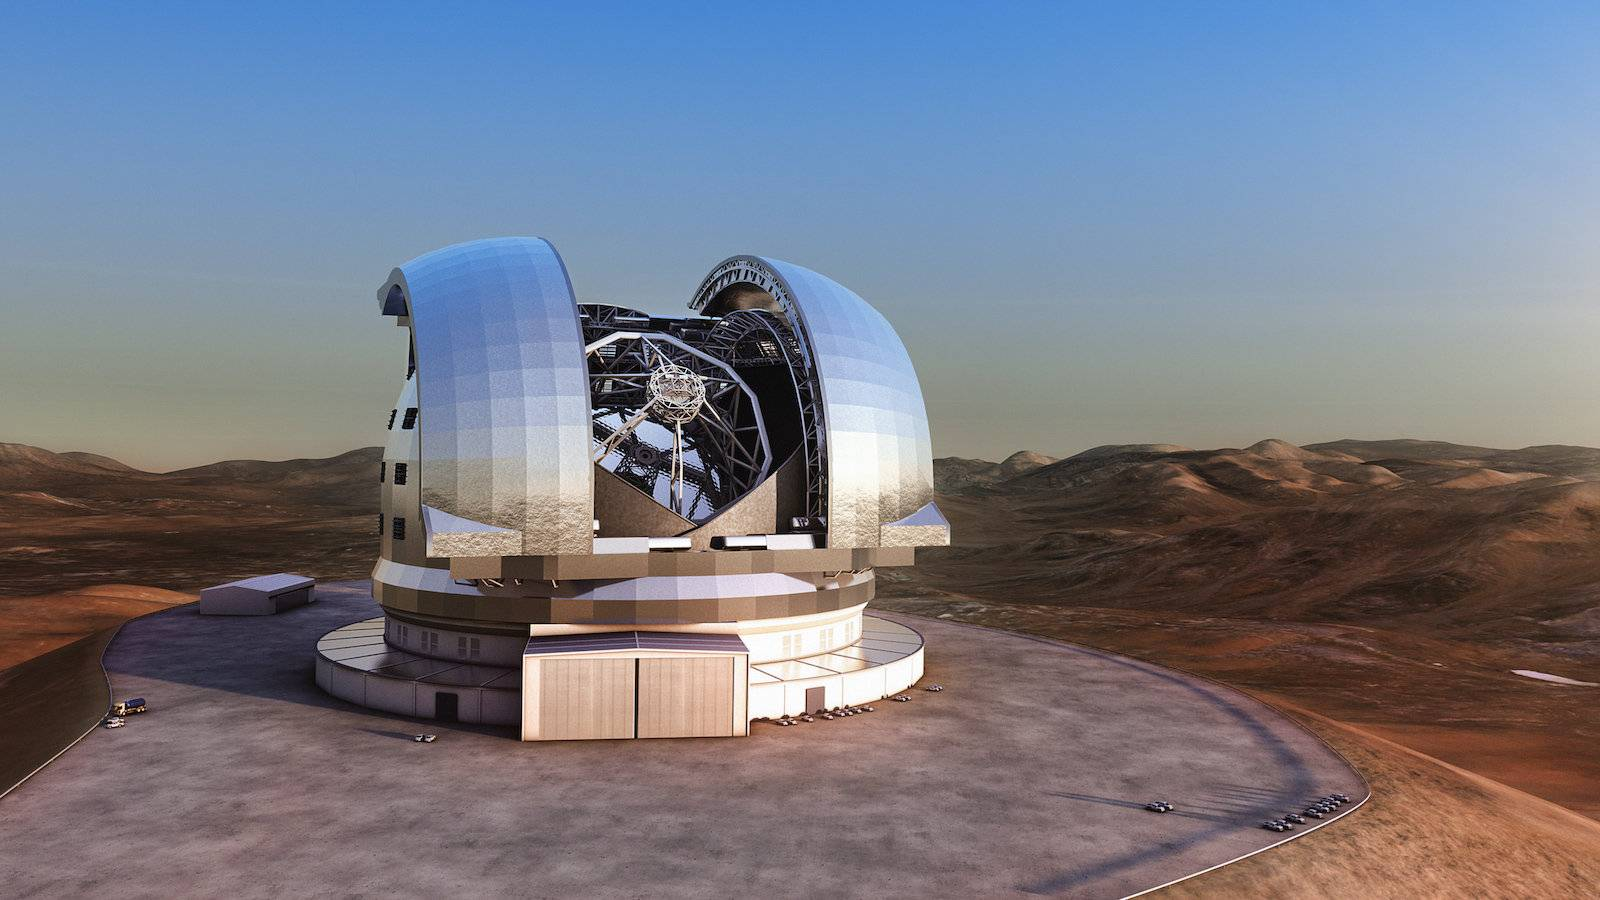 The ELT is set to be the largest telescope in the world once construction in Chile is complete